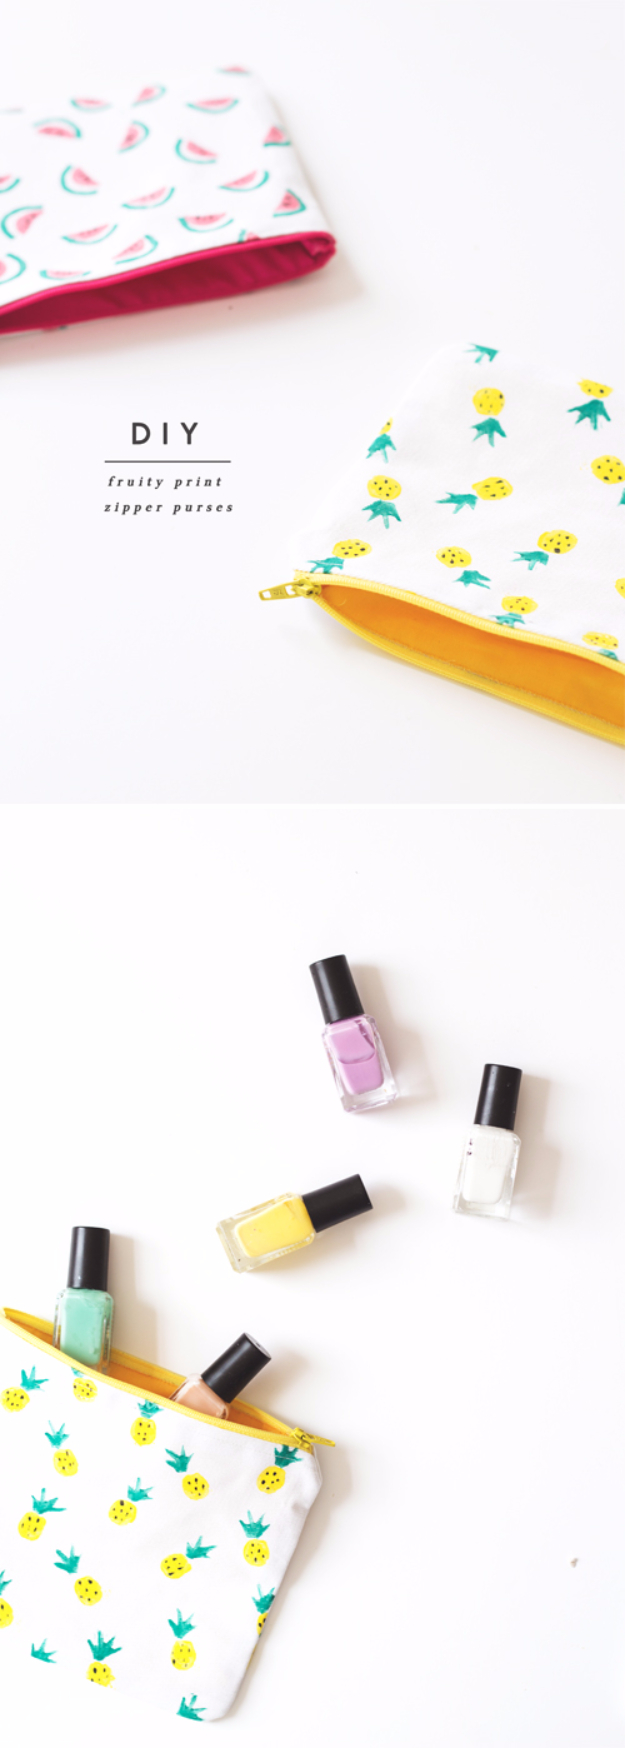 Cute DIY Gift for the Office - DIY Fruity Print Zipper Pouches - DIY Gift Ideas for Your Boss and Coworkers - Cheap and Quick Presents to Make for Office Parties, Secret Santa Gifts - Cool Mason Jar Ideas, Creative Gift Baskets and Easy Office Christmas Presents